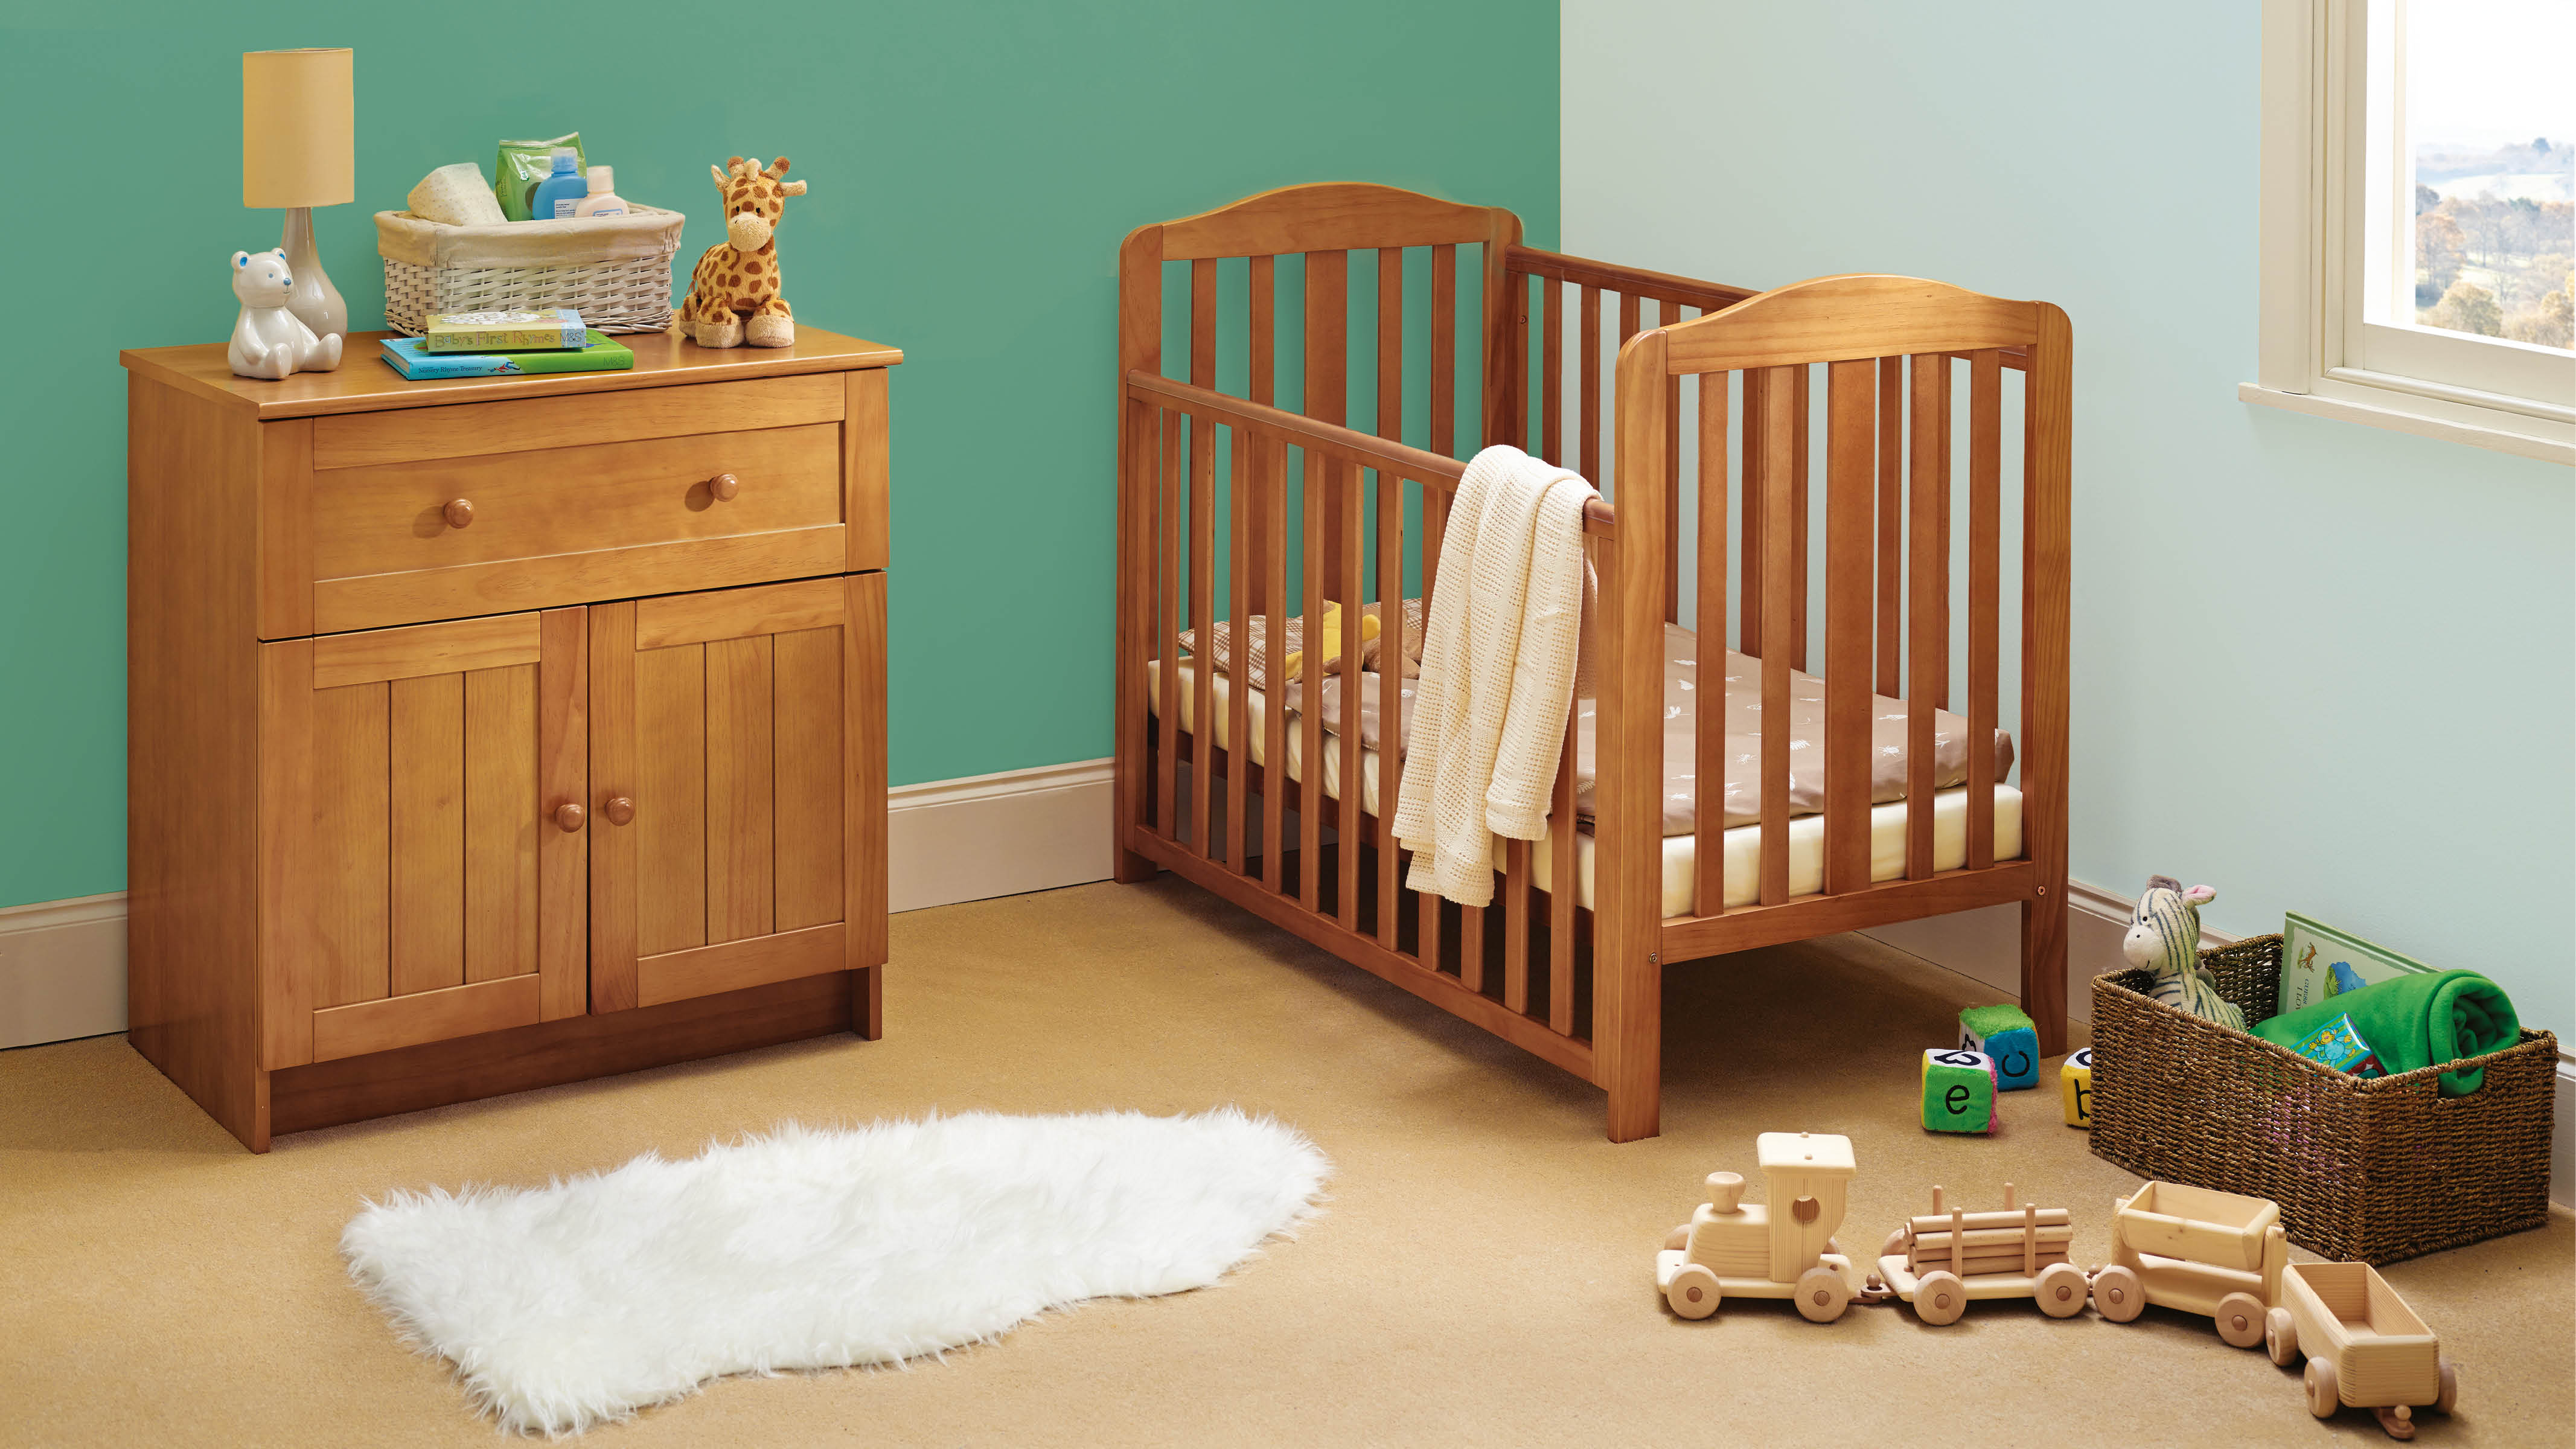 Bring a touch of the outdoors inside with a nature or woodland-inspired nursery scheme.